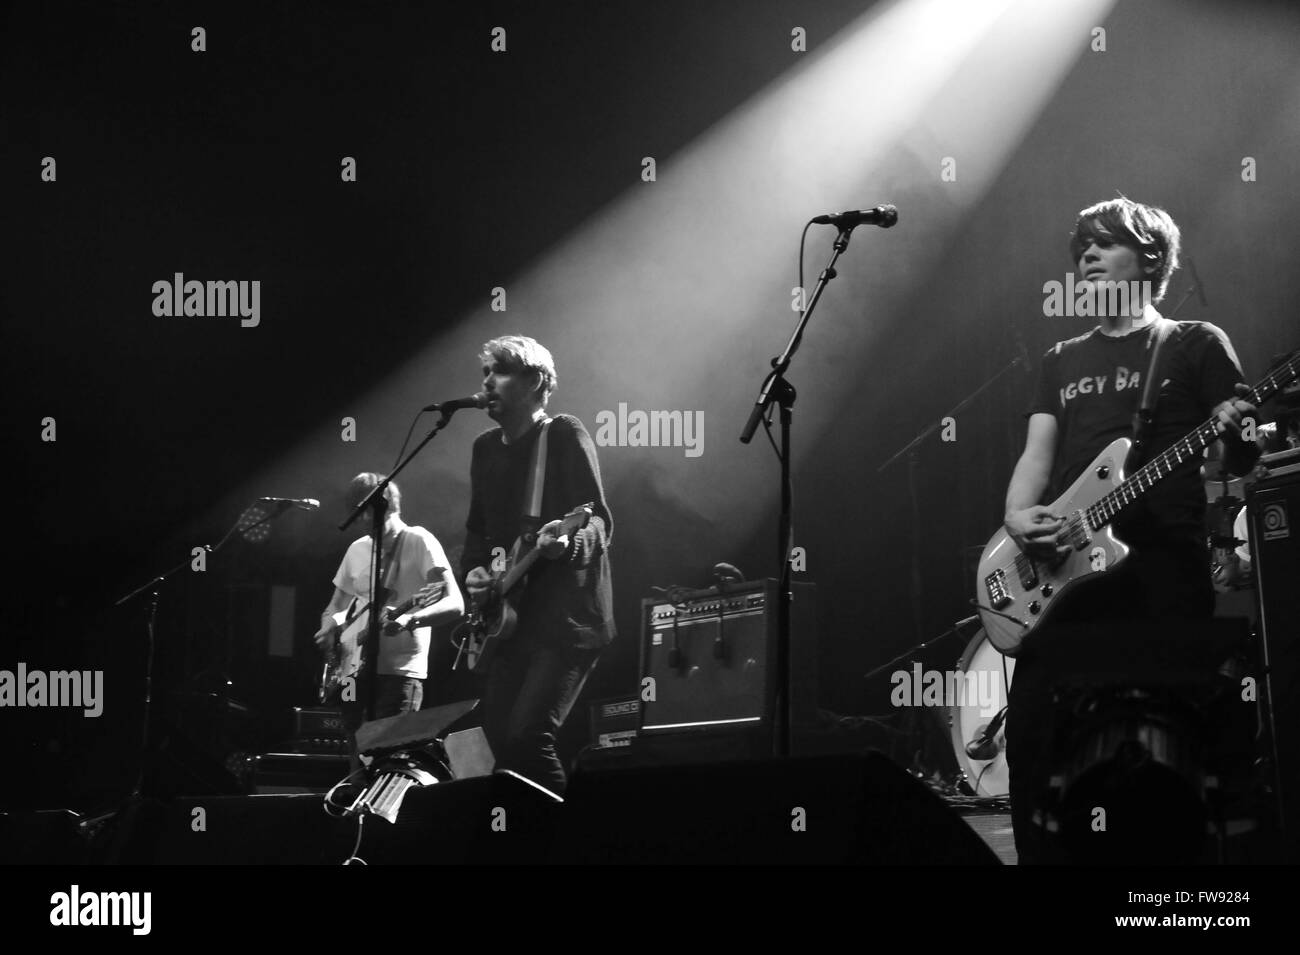 Tocotronic live in Hamburg, Germany. Editorial use only. Stock Photo